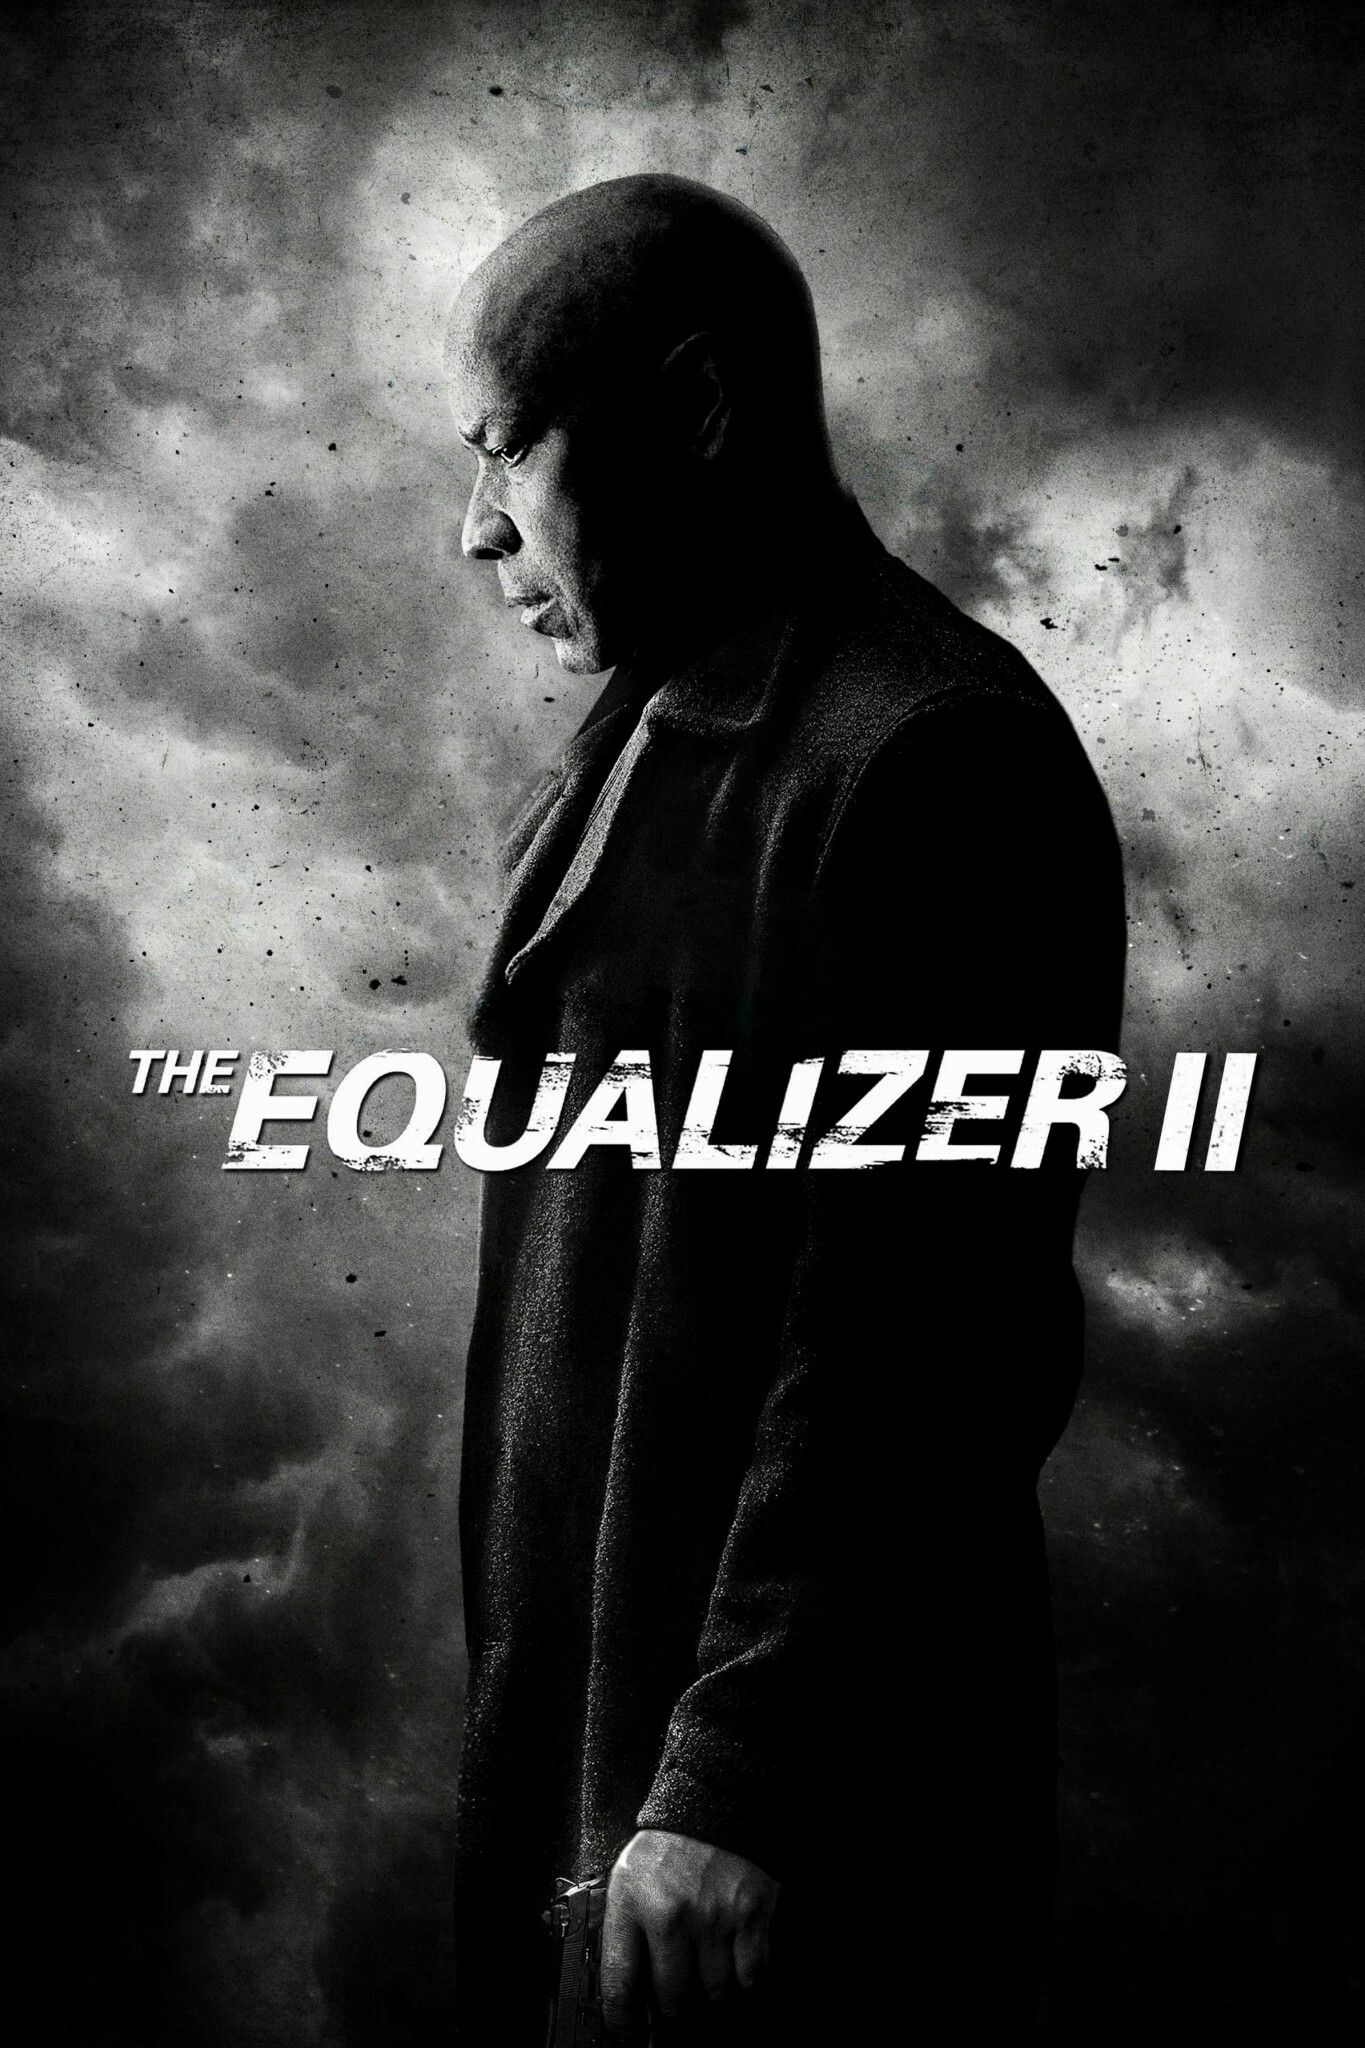 The Equalizer 2 movie poster TheEqualizer Fantastic Movie